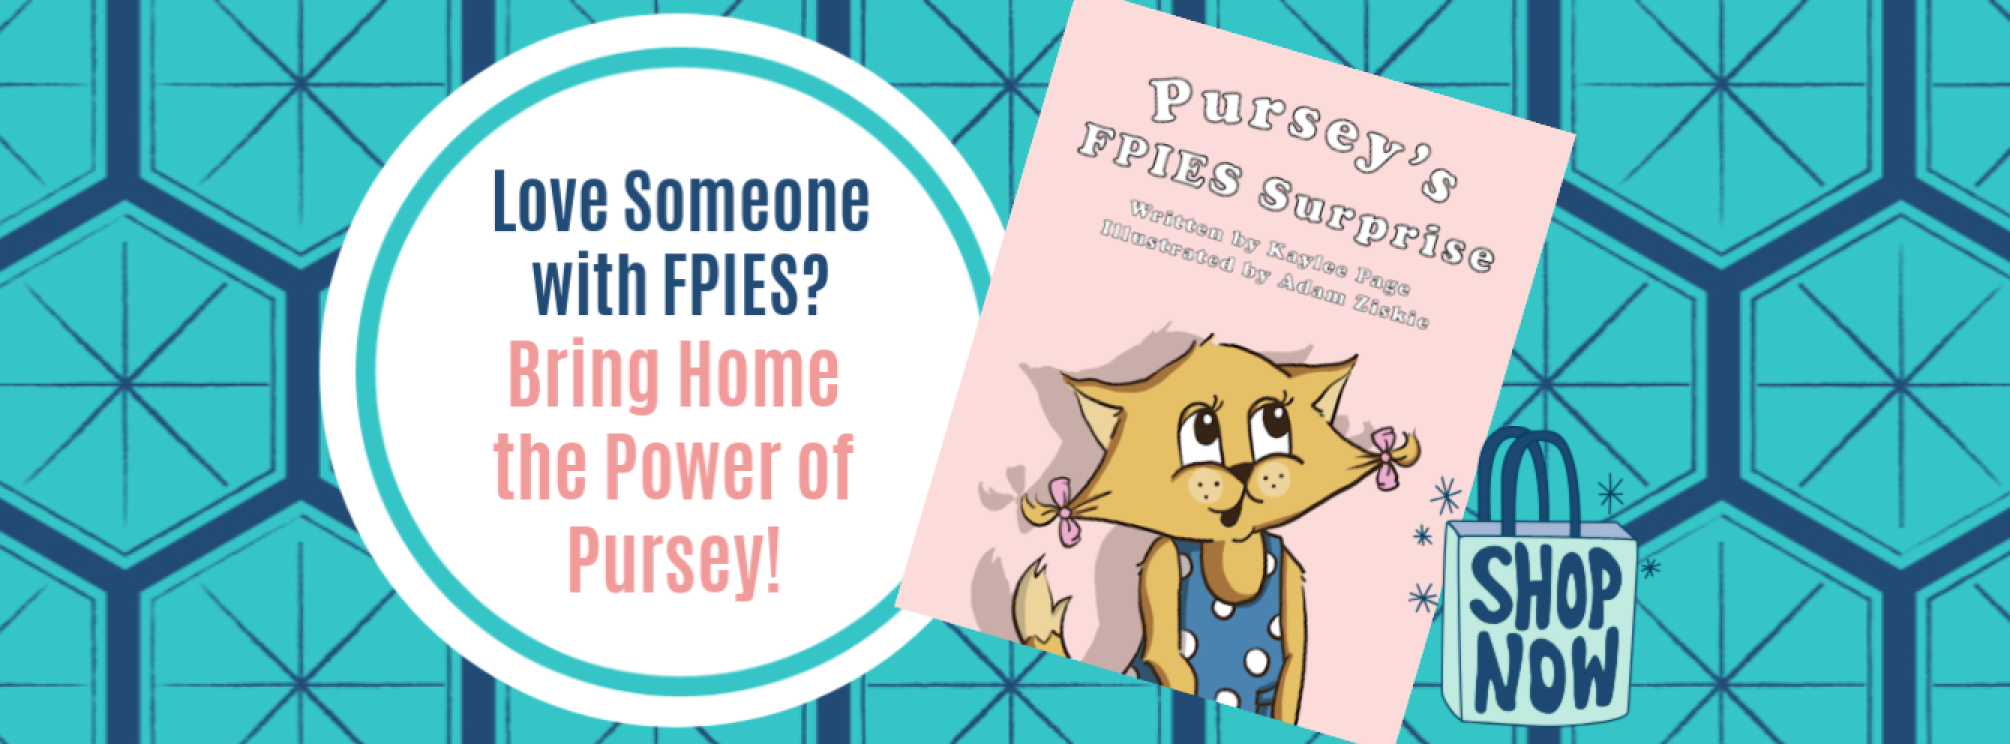 IFPIES Shop Pursey Pursey's FPIES Surprise Book by Kaylee Page